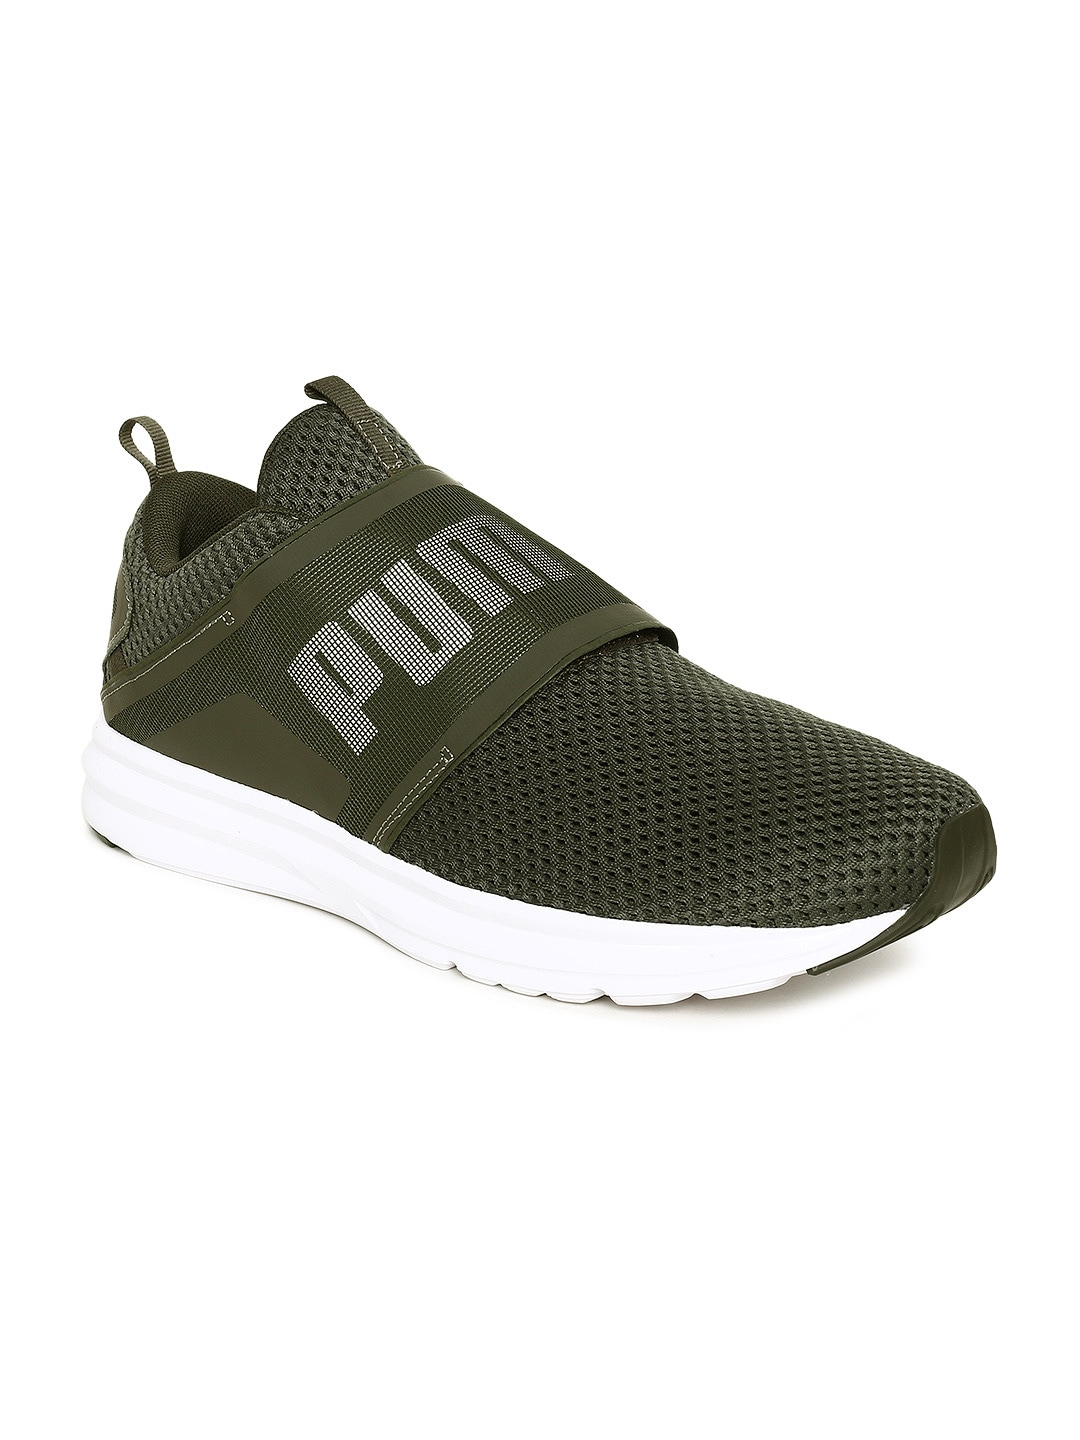 885227a9514 Puma Strap Sports Shoes - Buy Puma Strap Sports Shoes online in India